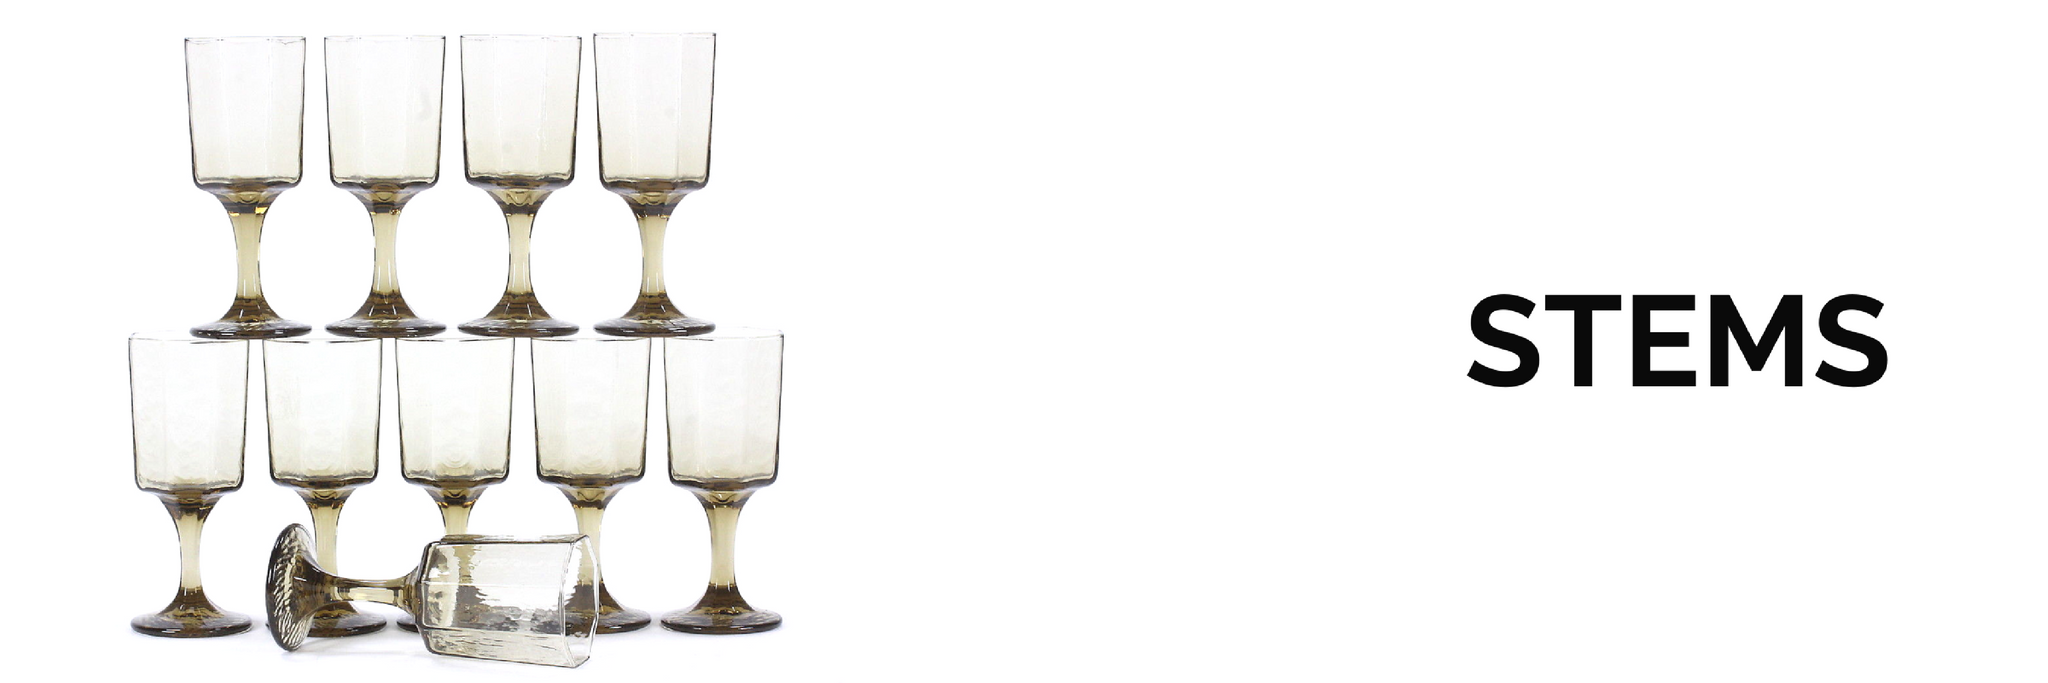 Collection of vintage and antique barware, specifically glasses with stem or stemware for sale